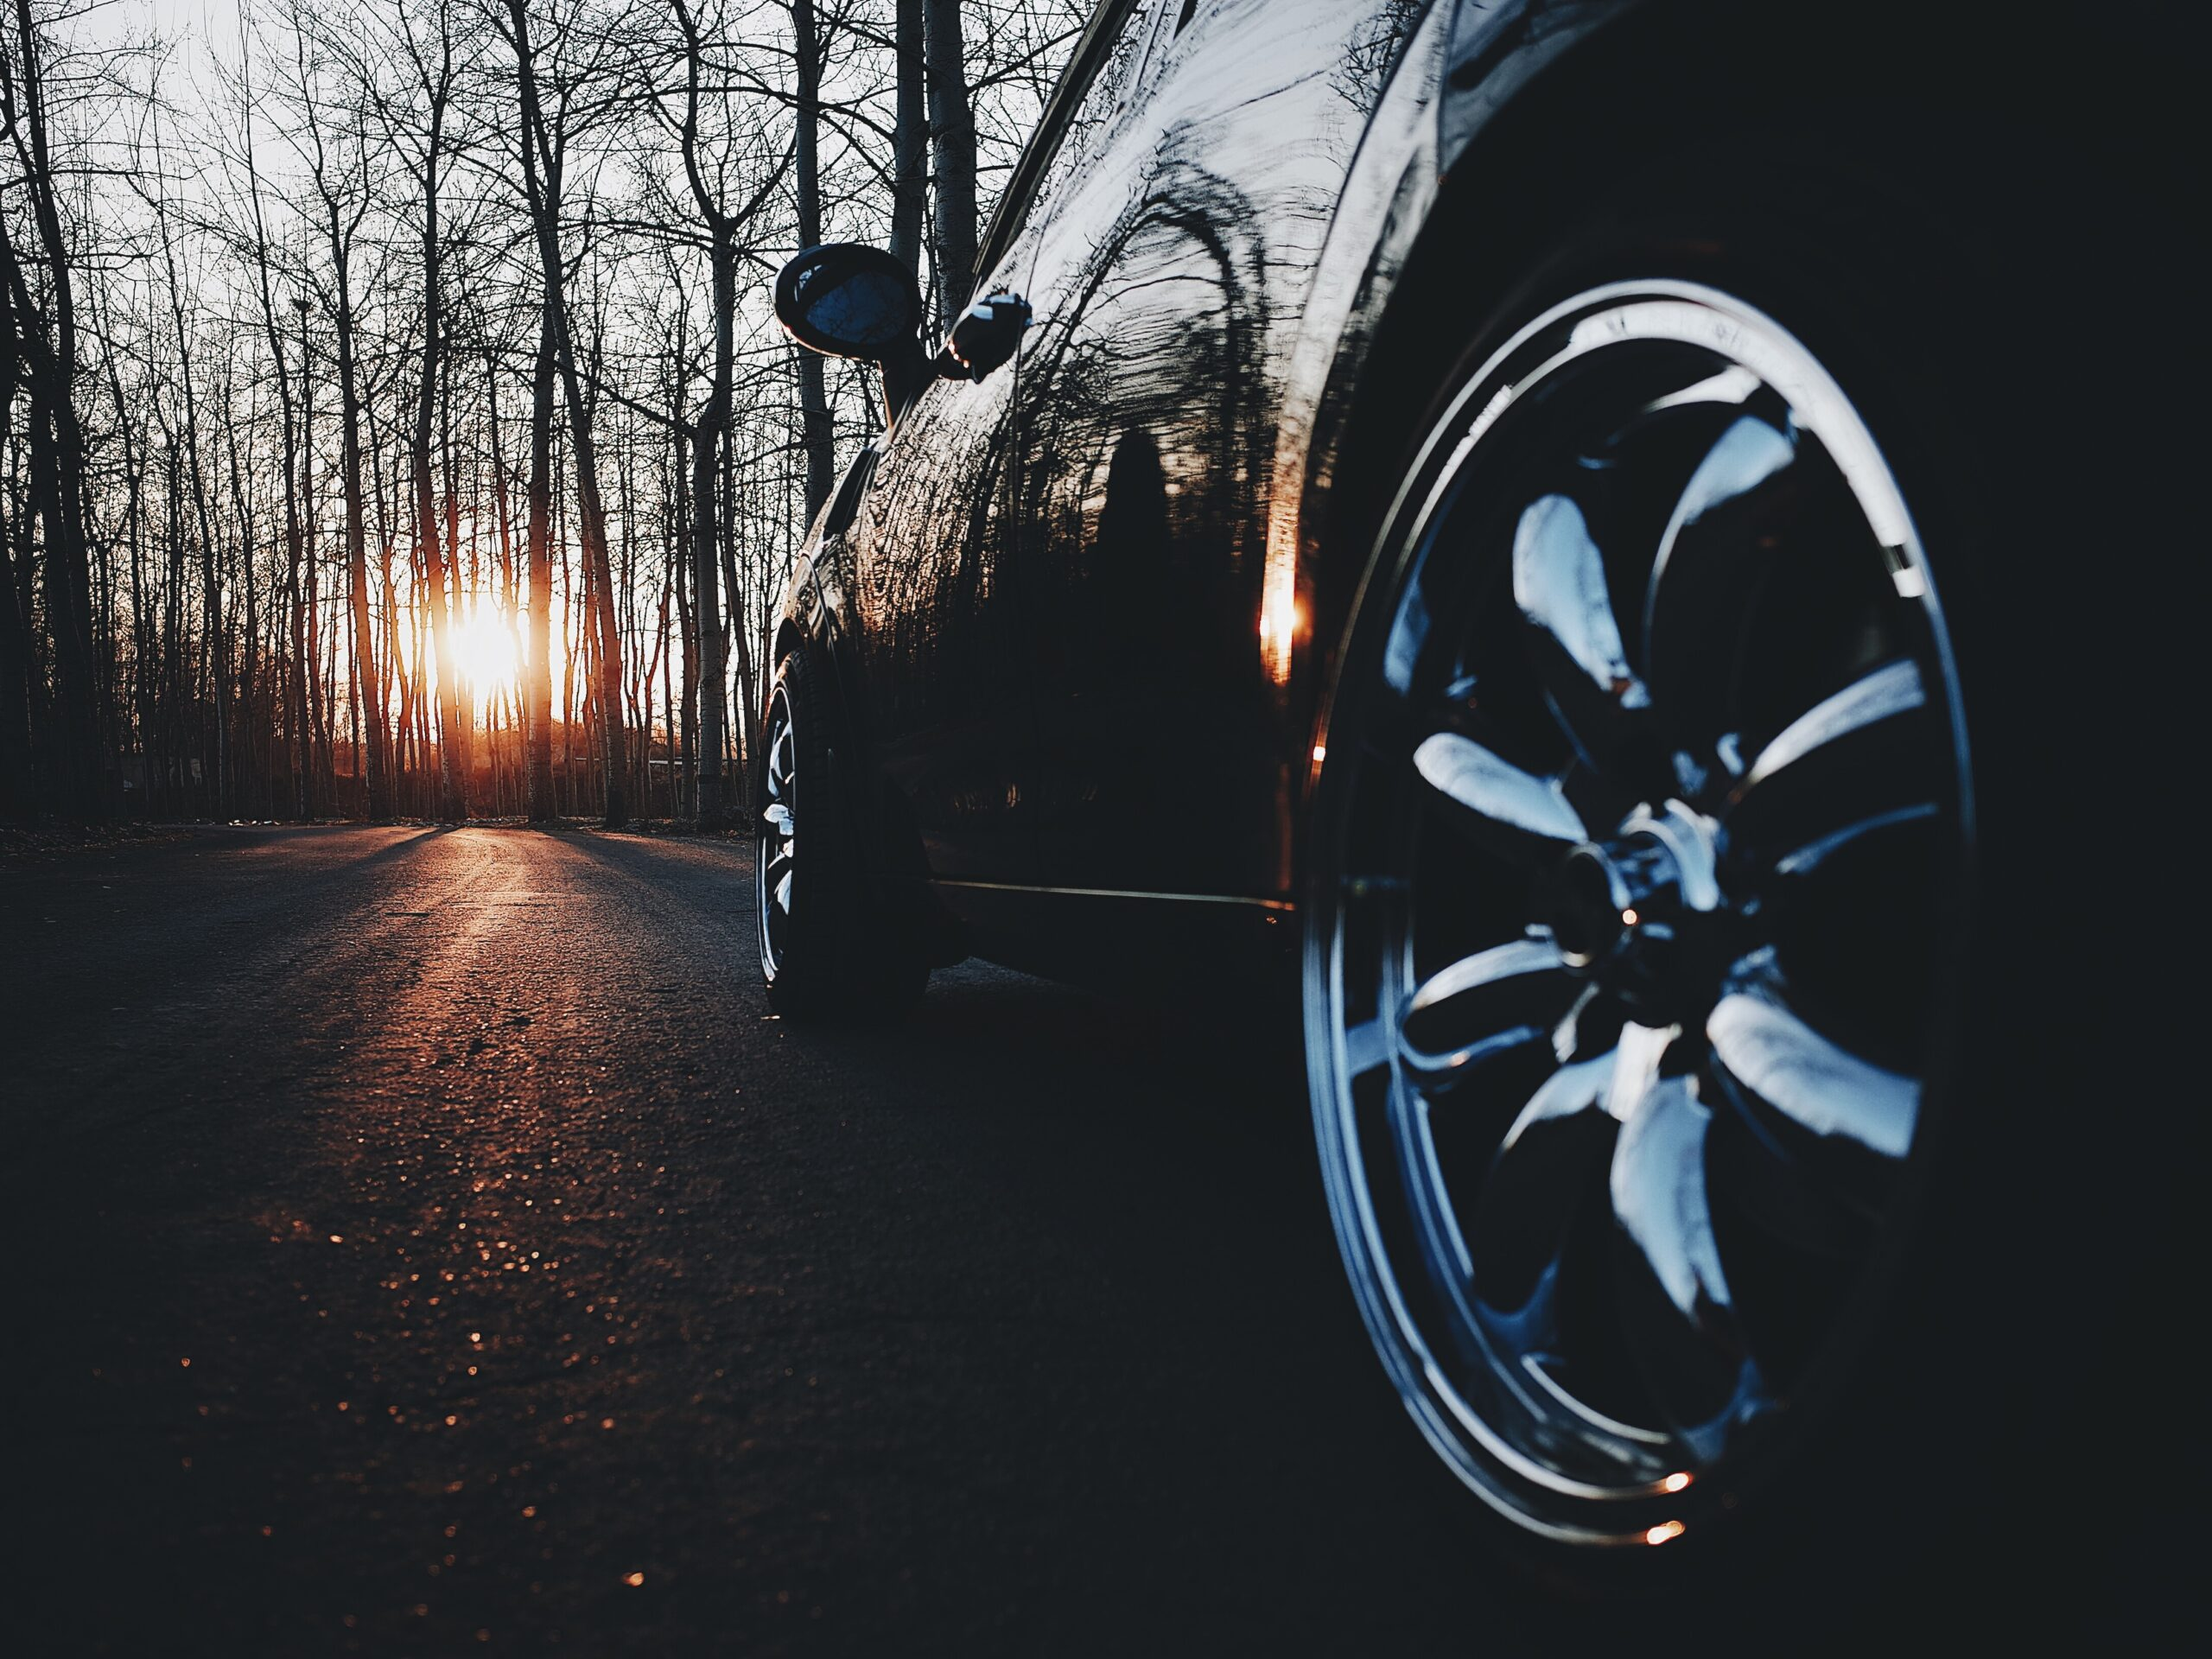 black car on a road at sunset aimed at the tyres thinking about car expenses and maintenance